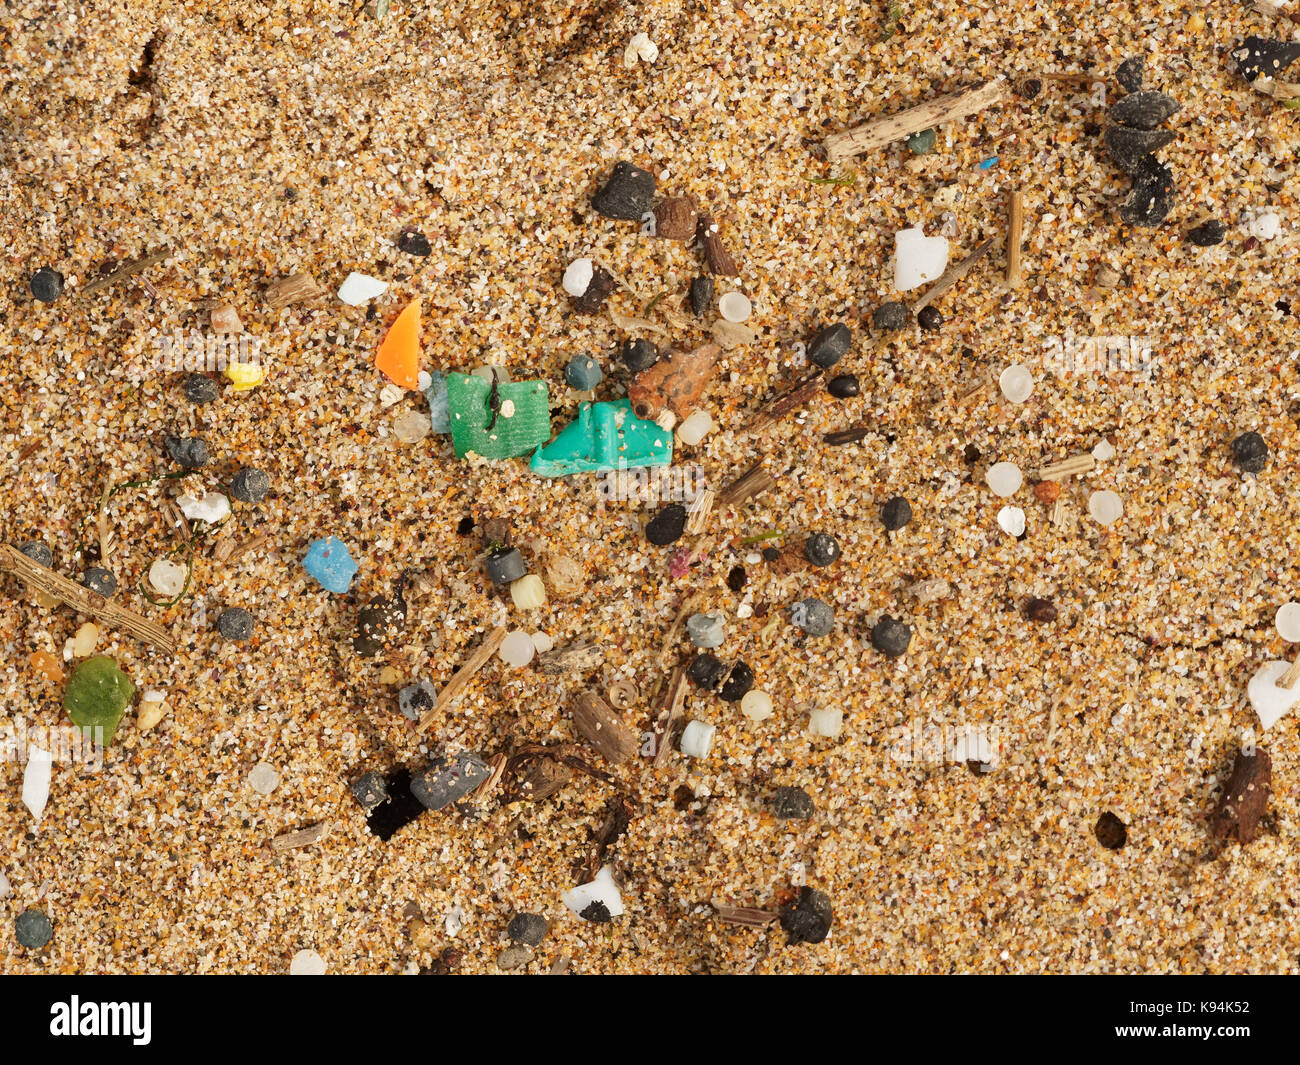 beaches-and-rock-pools-polluted-with-pla